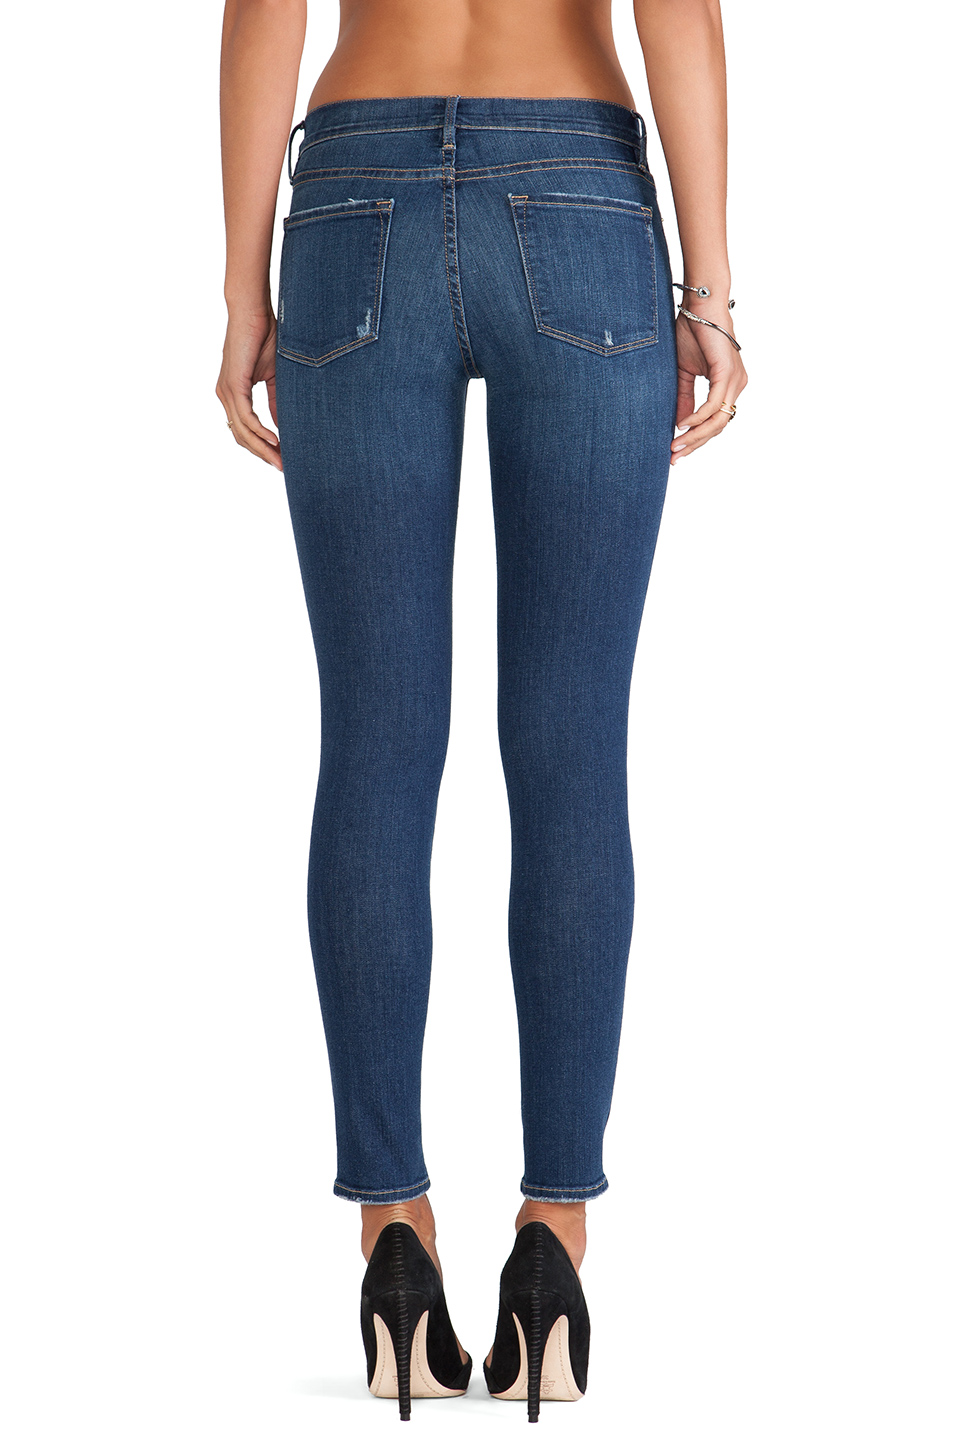 Frame denim le skinny de jeanne in walgrove from revolveclothing.com